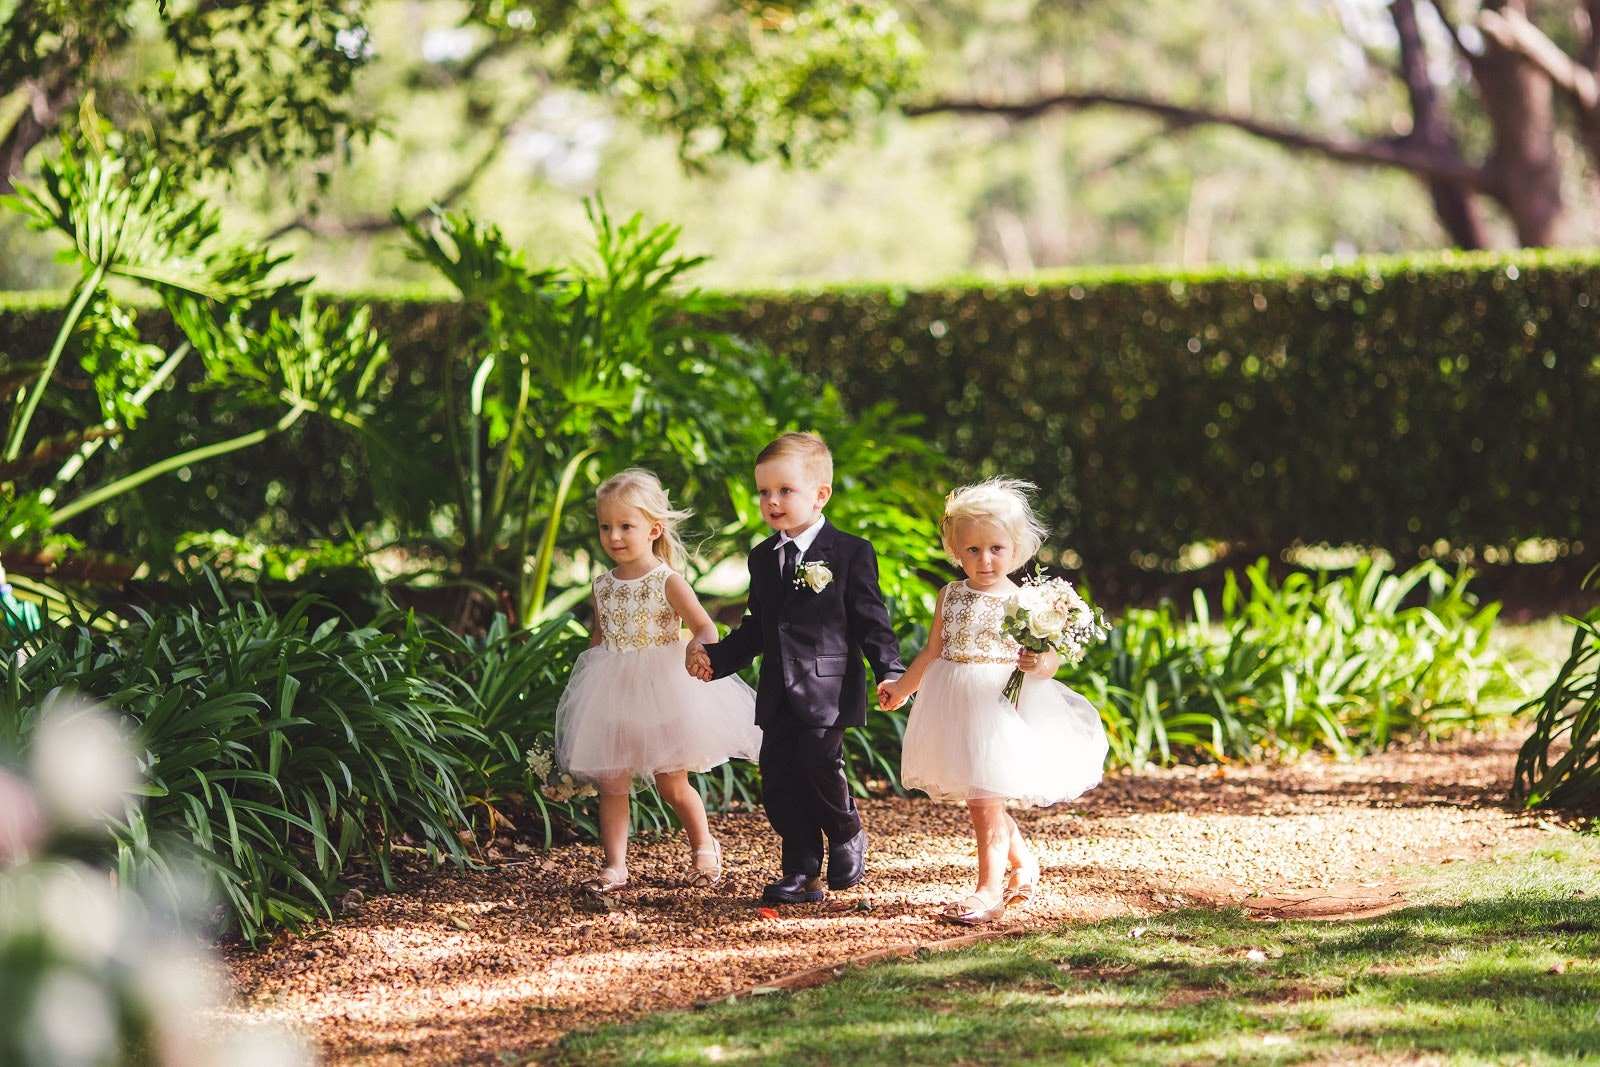 2 flower girls and a page boy walking down a garden path holding hands